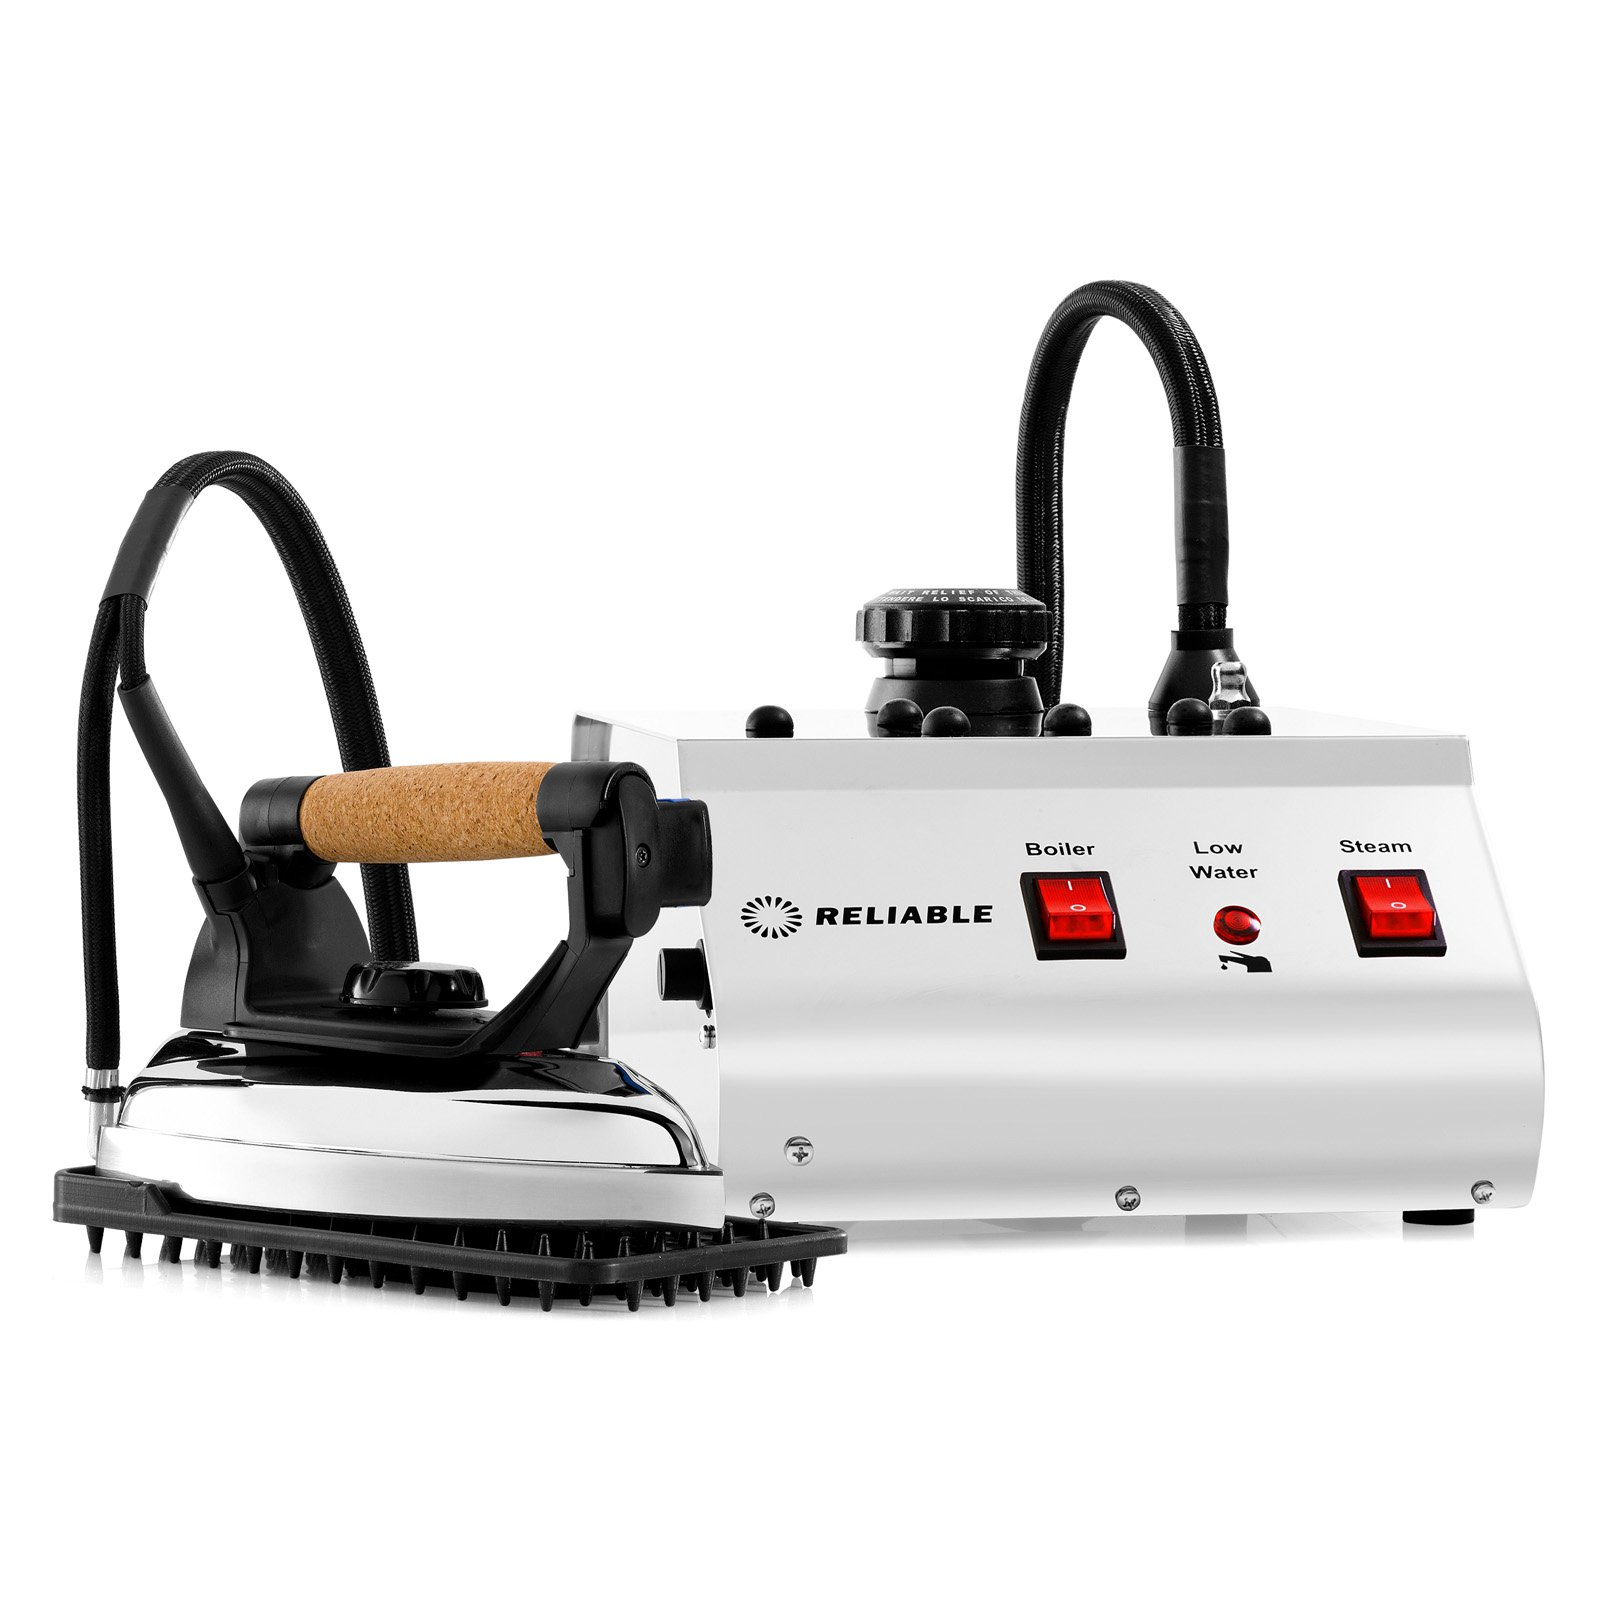 Reliable Professional Steam Ironing Station,2 hrs/.375 Gallon. Made in Italy, Chrome, 4000IS